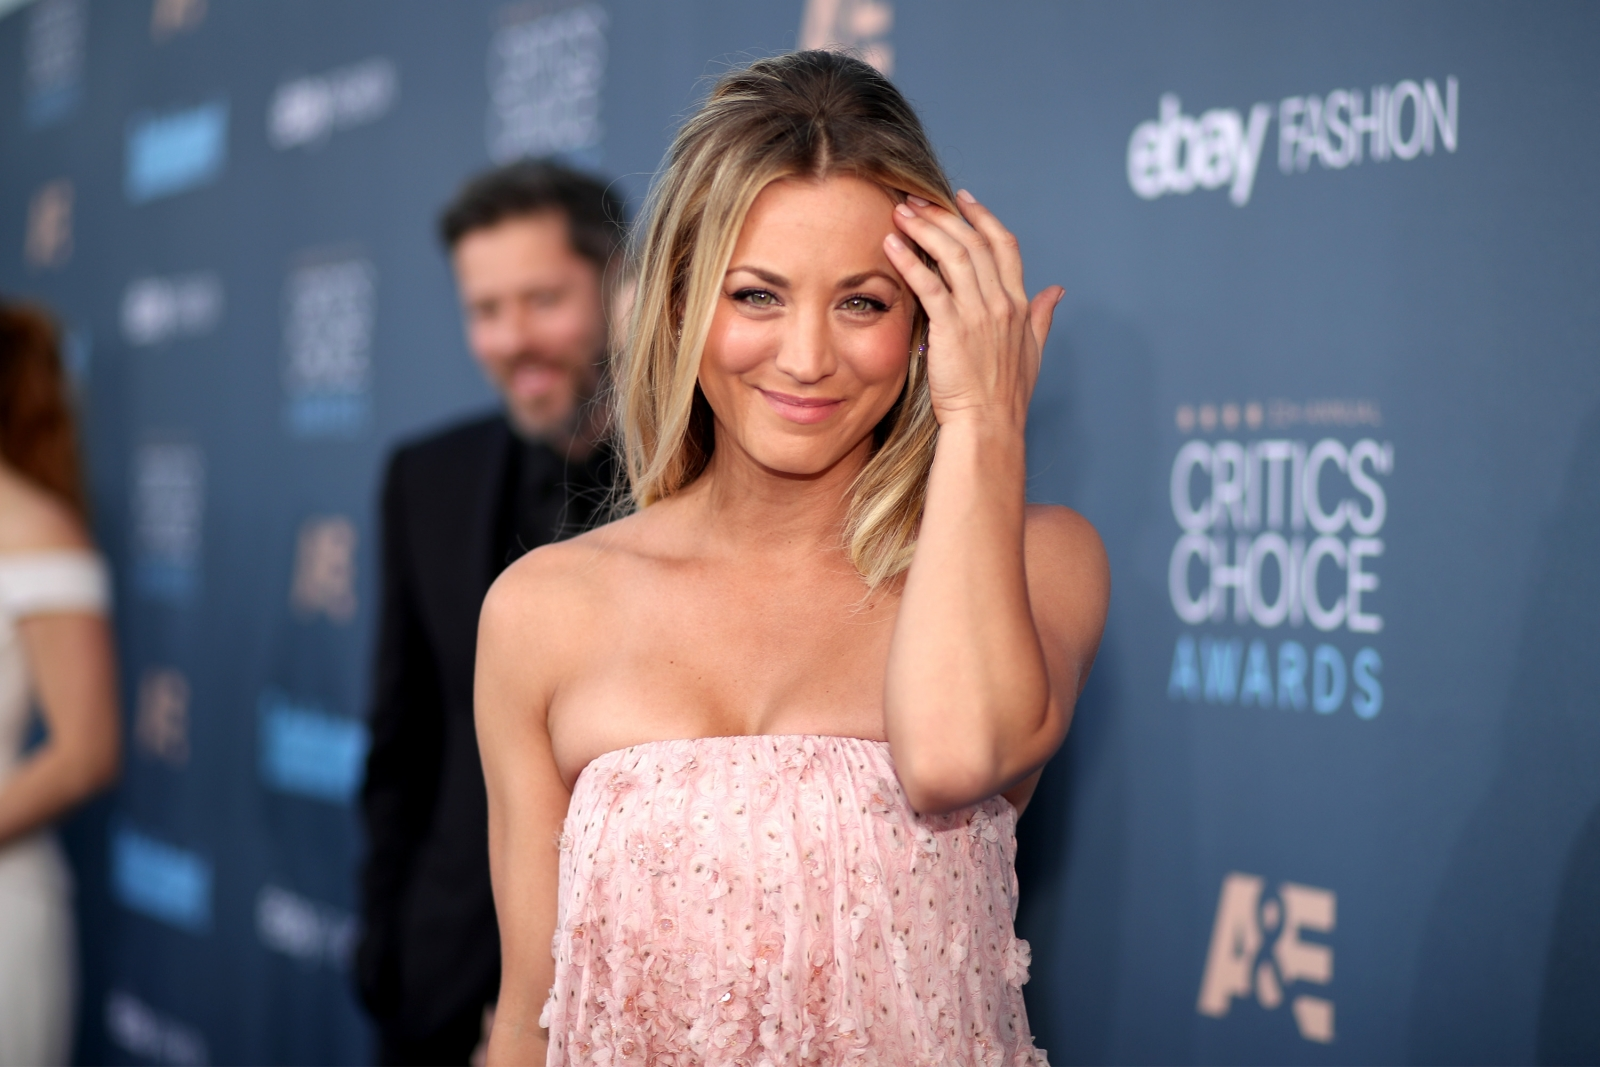 Fans get emotional over Big Bang Theory star Kaley Cuoco's new pic: 'Thank you for showing real life'